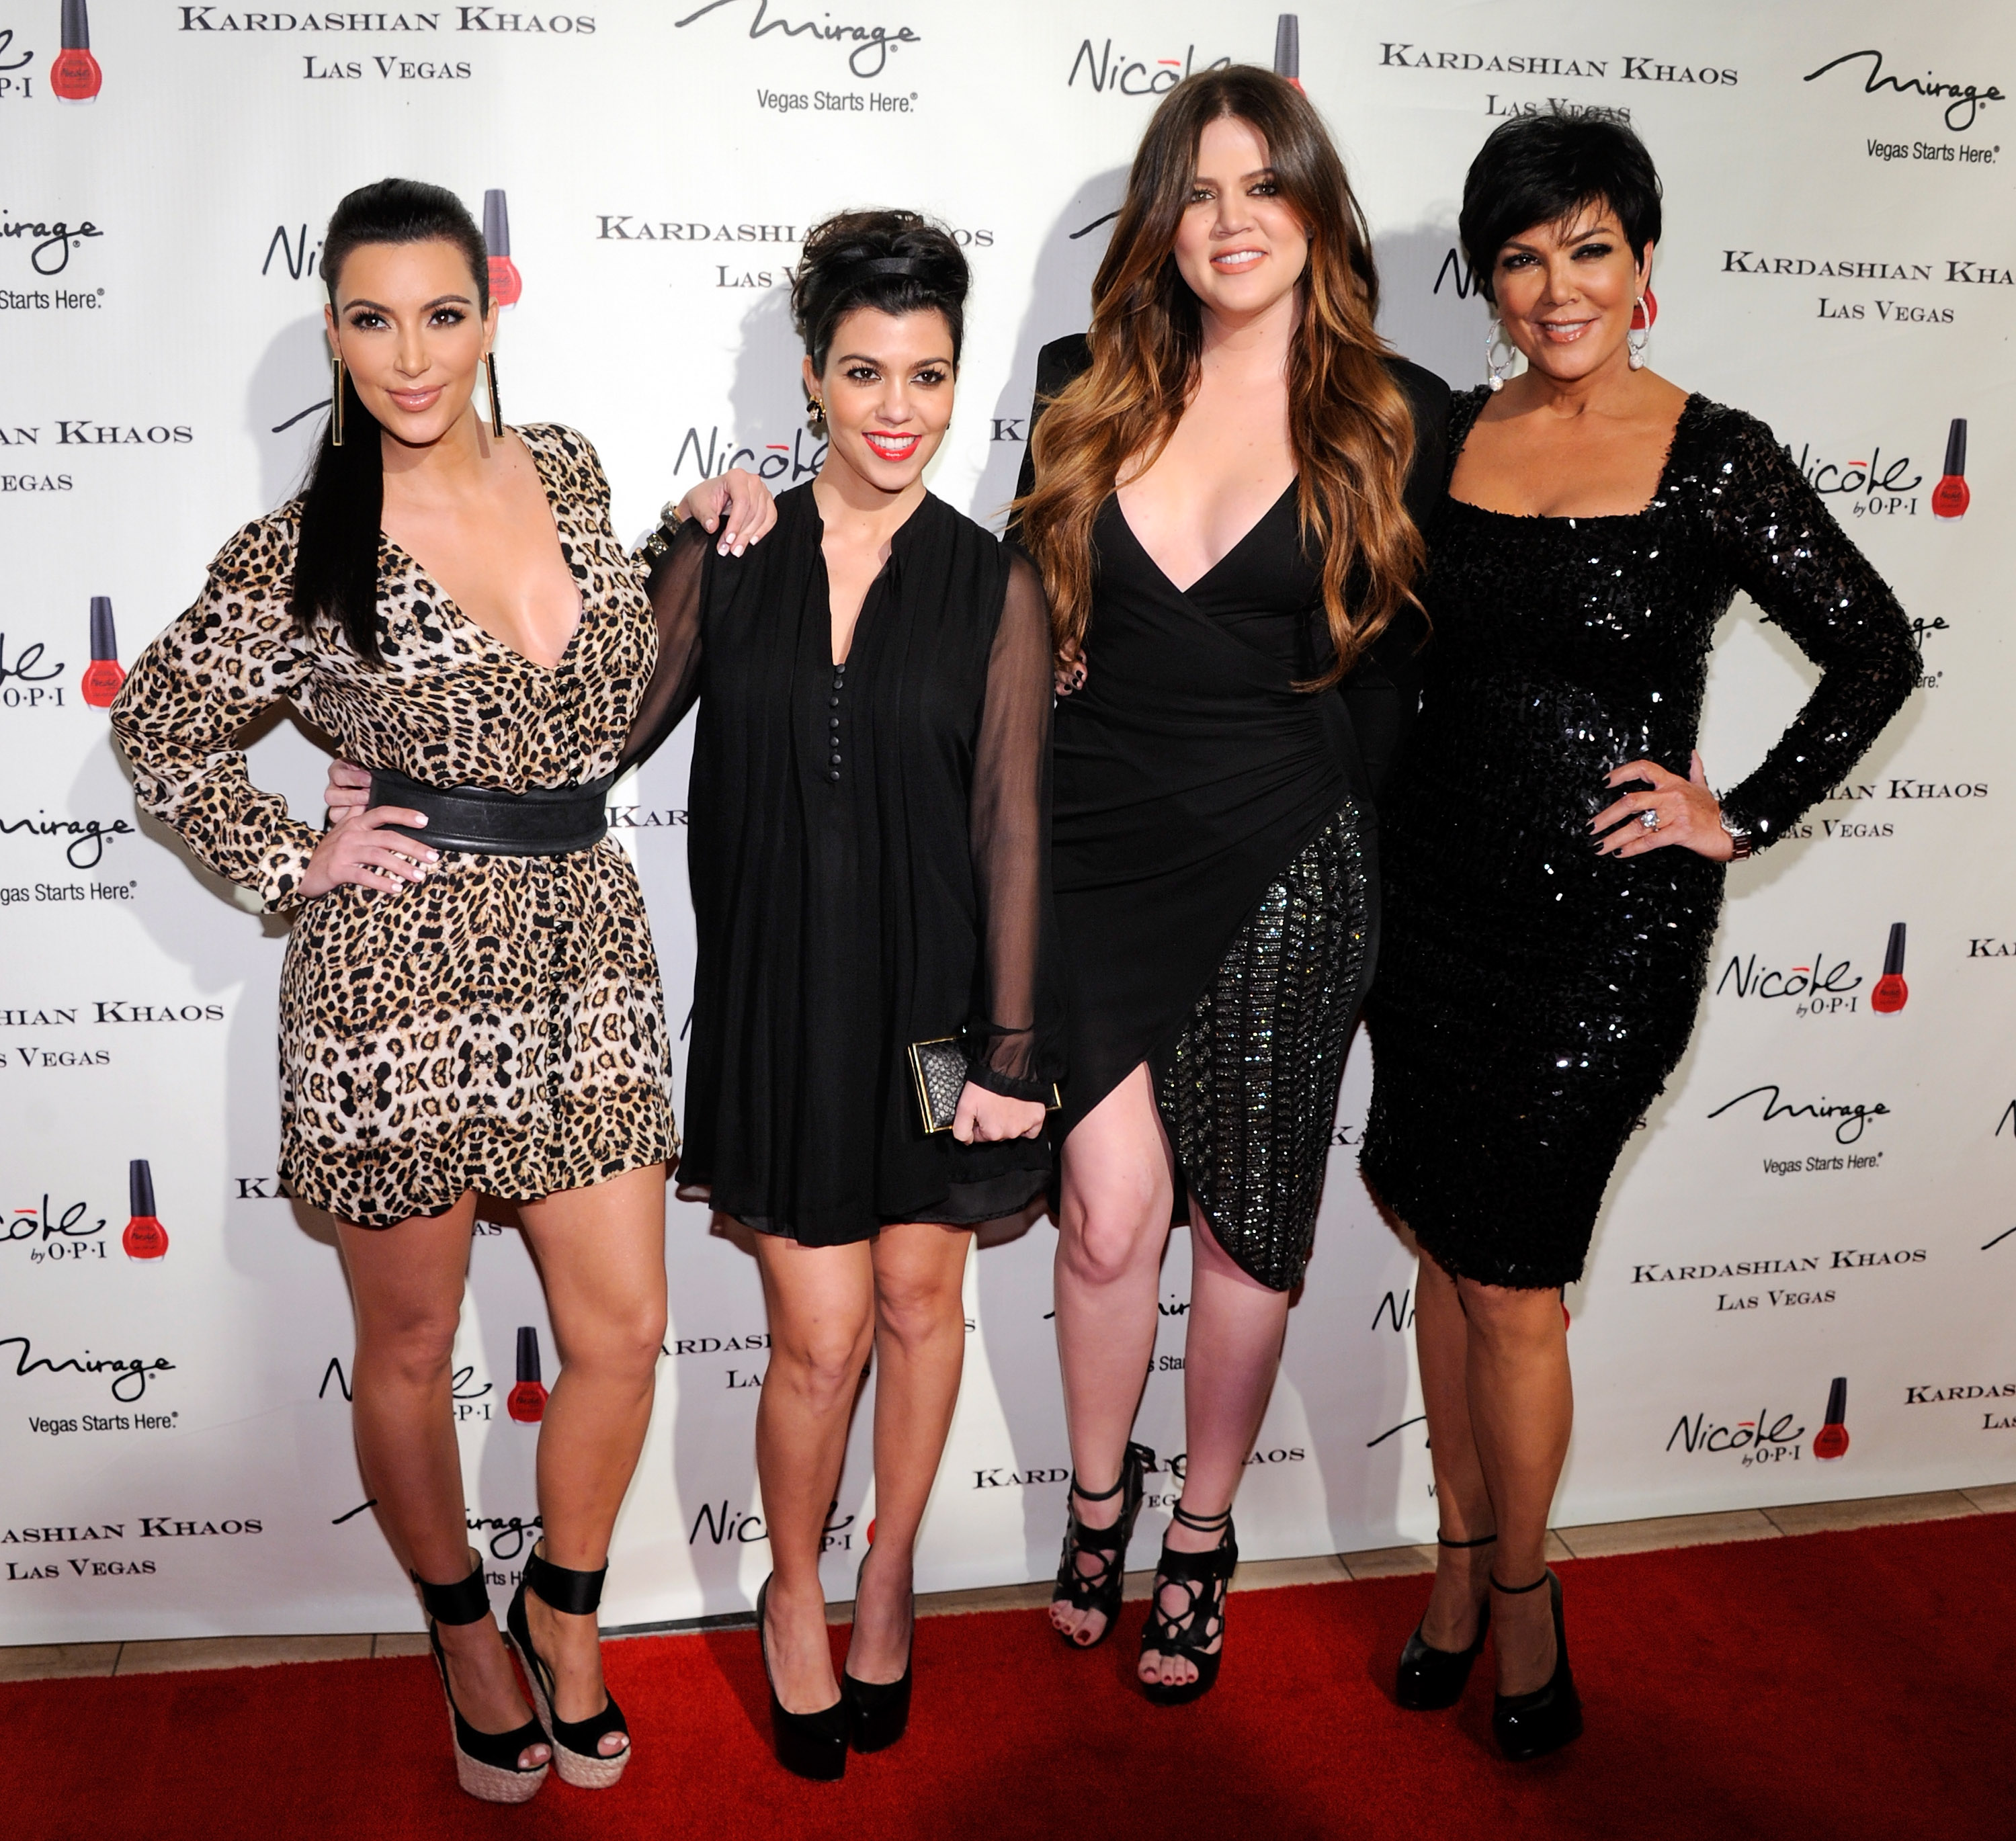 c0fc8013f132 81 Kardashian Hairstyles, Ranked From Khloe's Cringe-Worthy Highlights To  Kim's Enviable Retro Curls